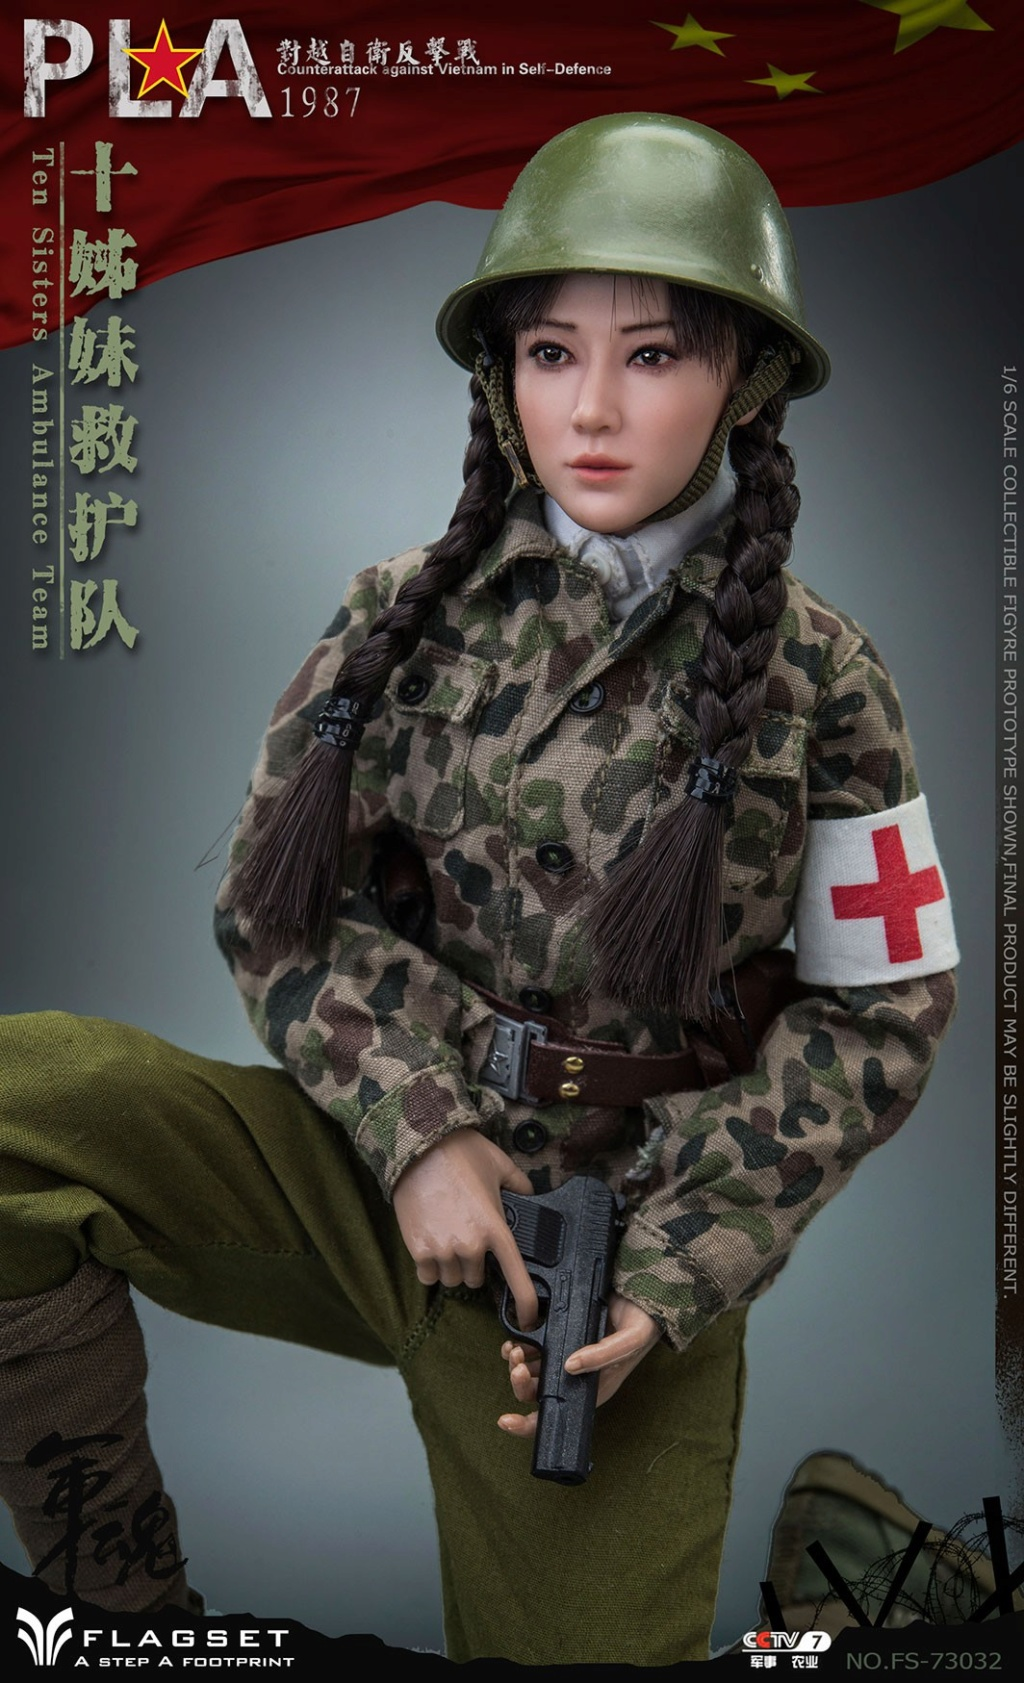 CounterAttack - NEW PRODUCT: Flagset: 1/6 counterattack against Vietnam-female soldiers of the ten sisters rescue team of the Chinese People's Liberation Army (FS73032#) 06540710